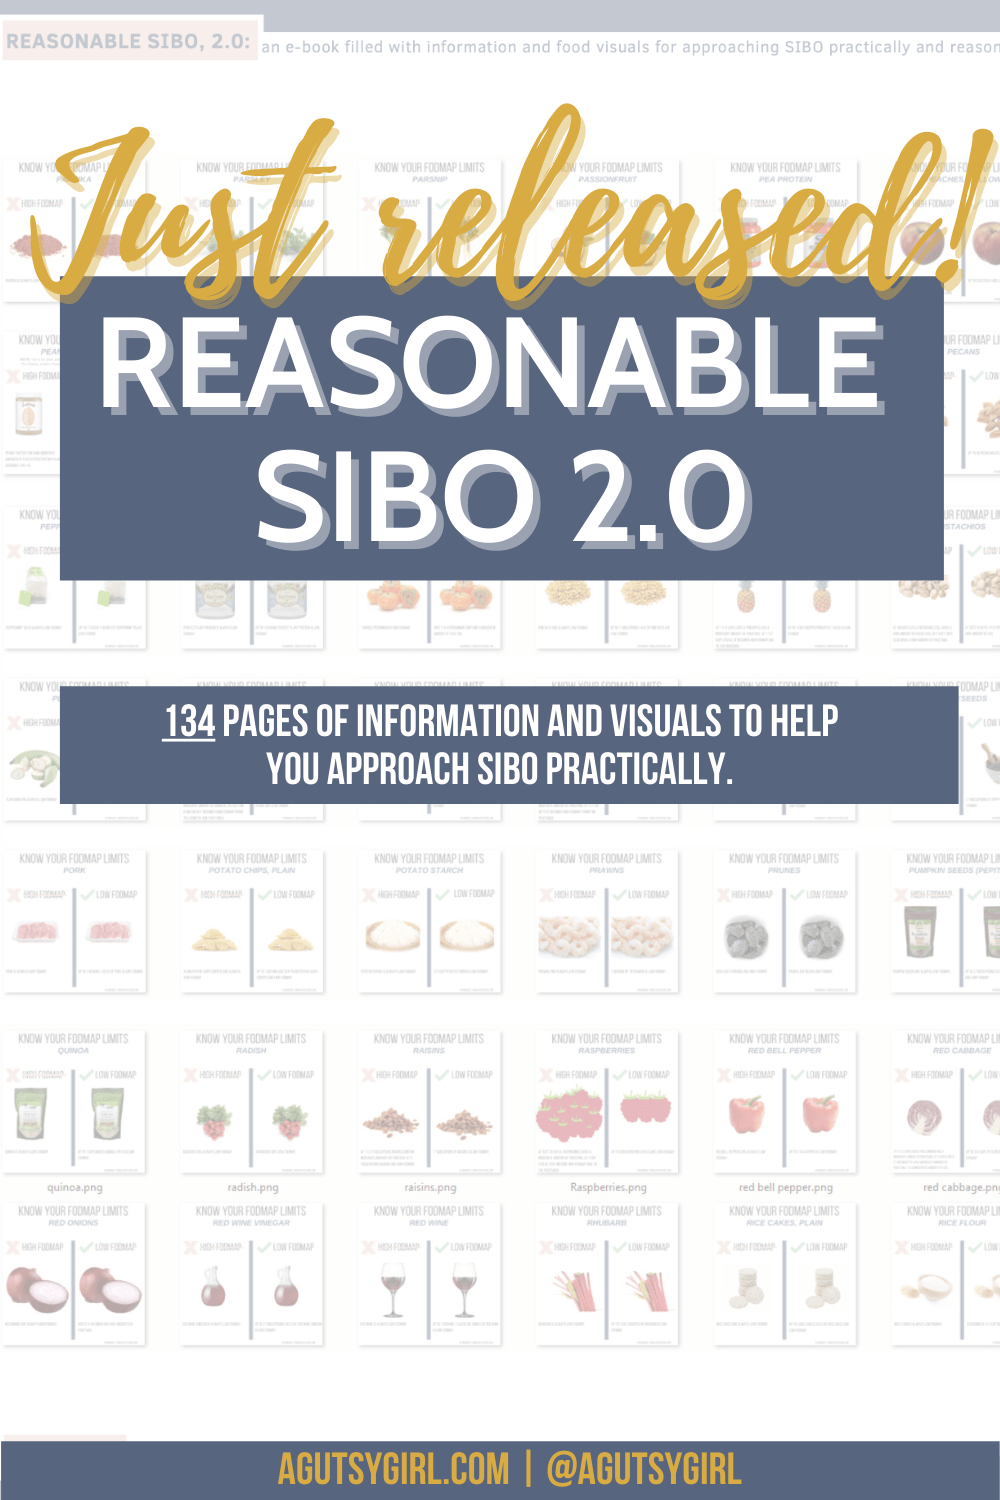 REASONABLE SIBO 2.0 with A Gutsy Girl agutsygirl.com #sibo #fodmap #guthealth #ibs